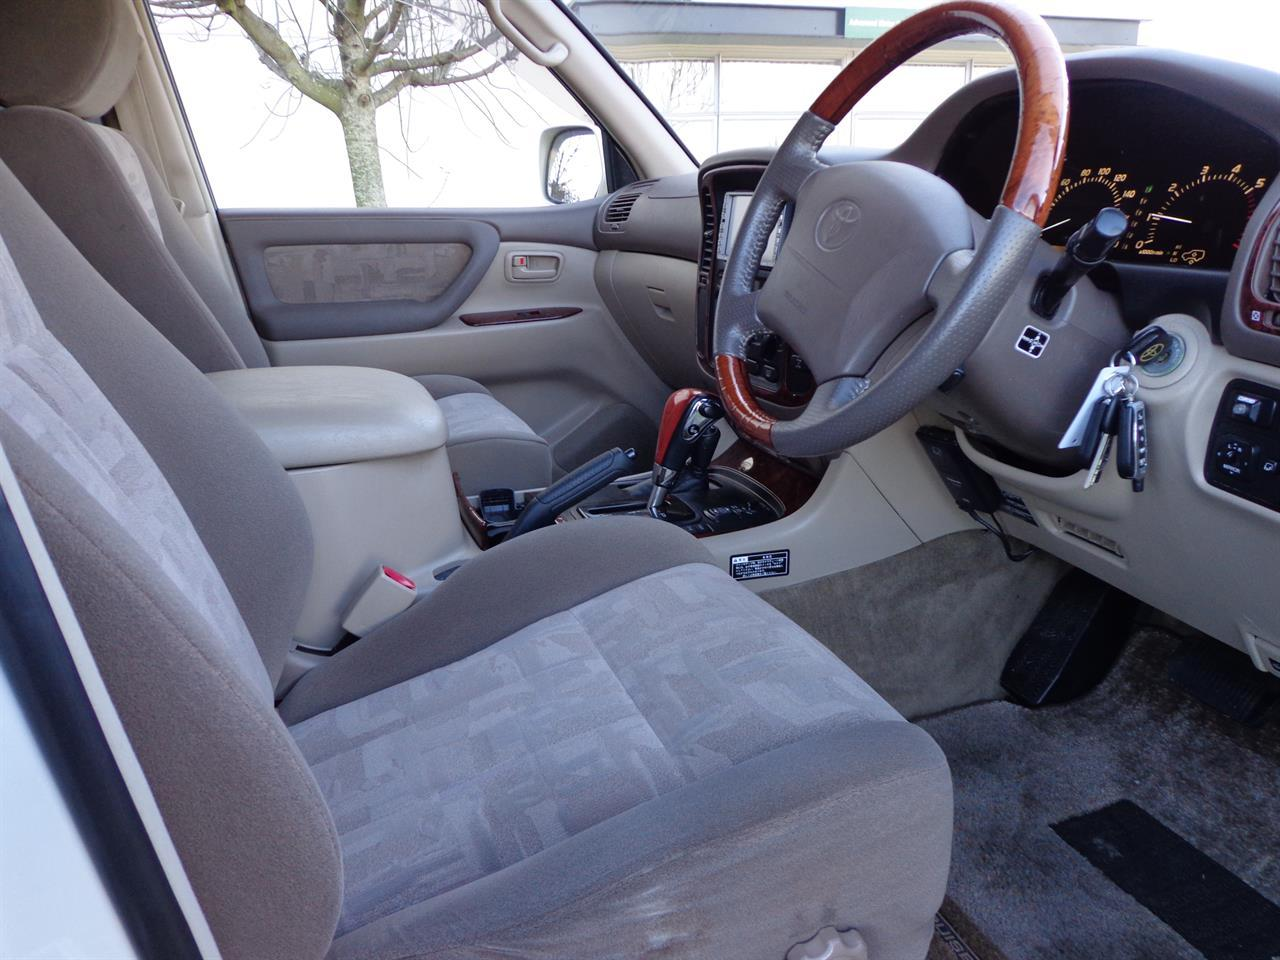 image-9, 2000 Toyota Land Cruiser 100 VX Limited G Selectio at Christchurch